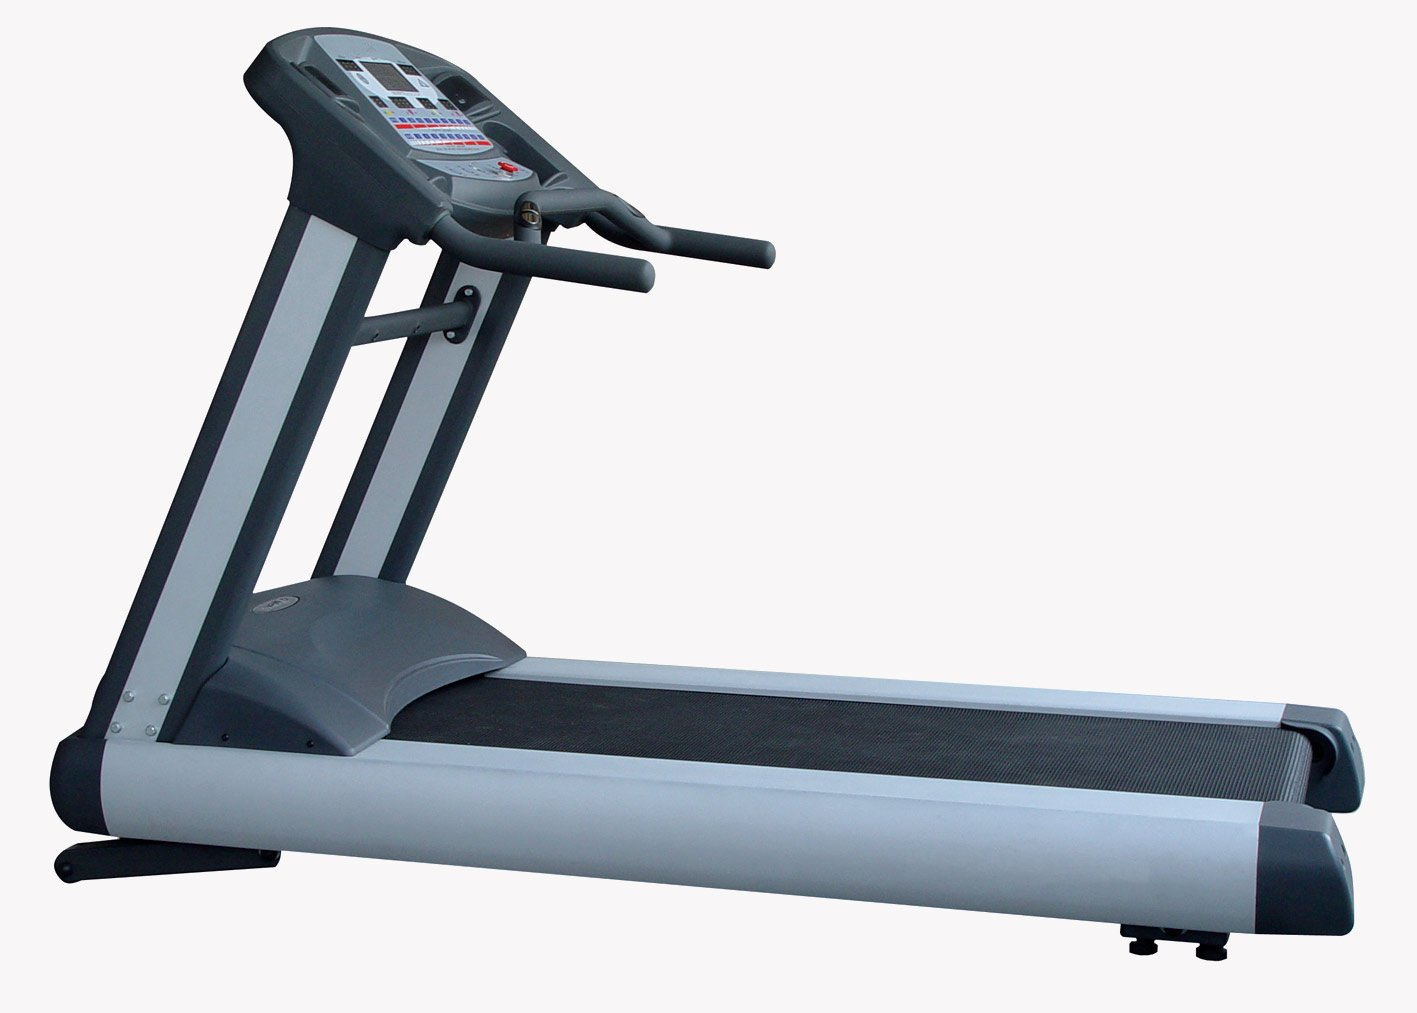 Top 10 Best Motorized Treadmills for Sale Reviews 2019